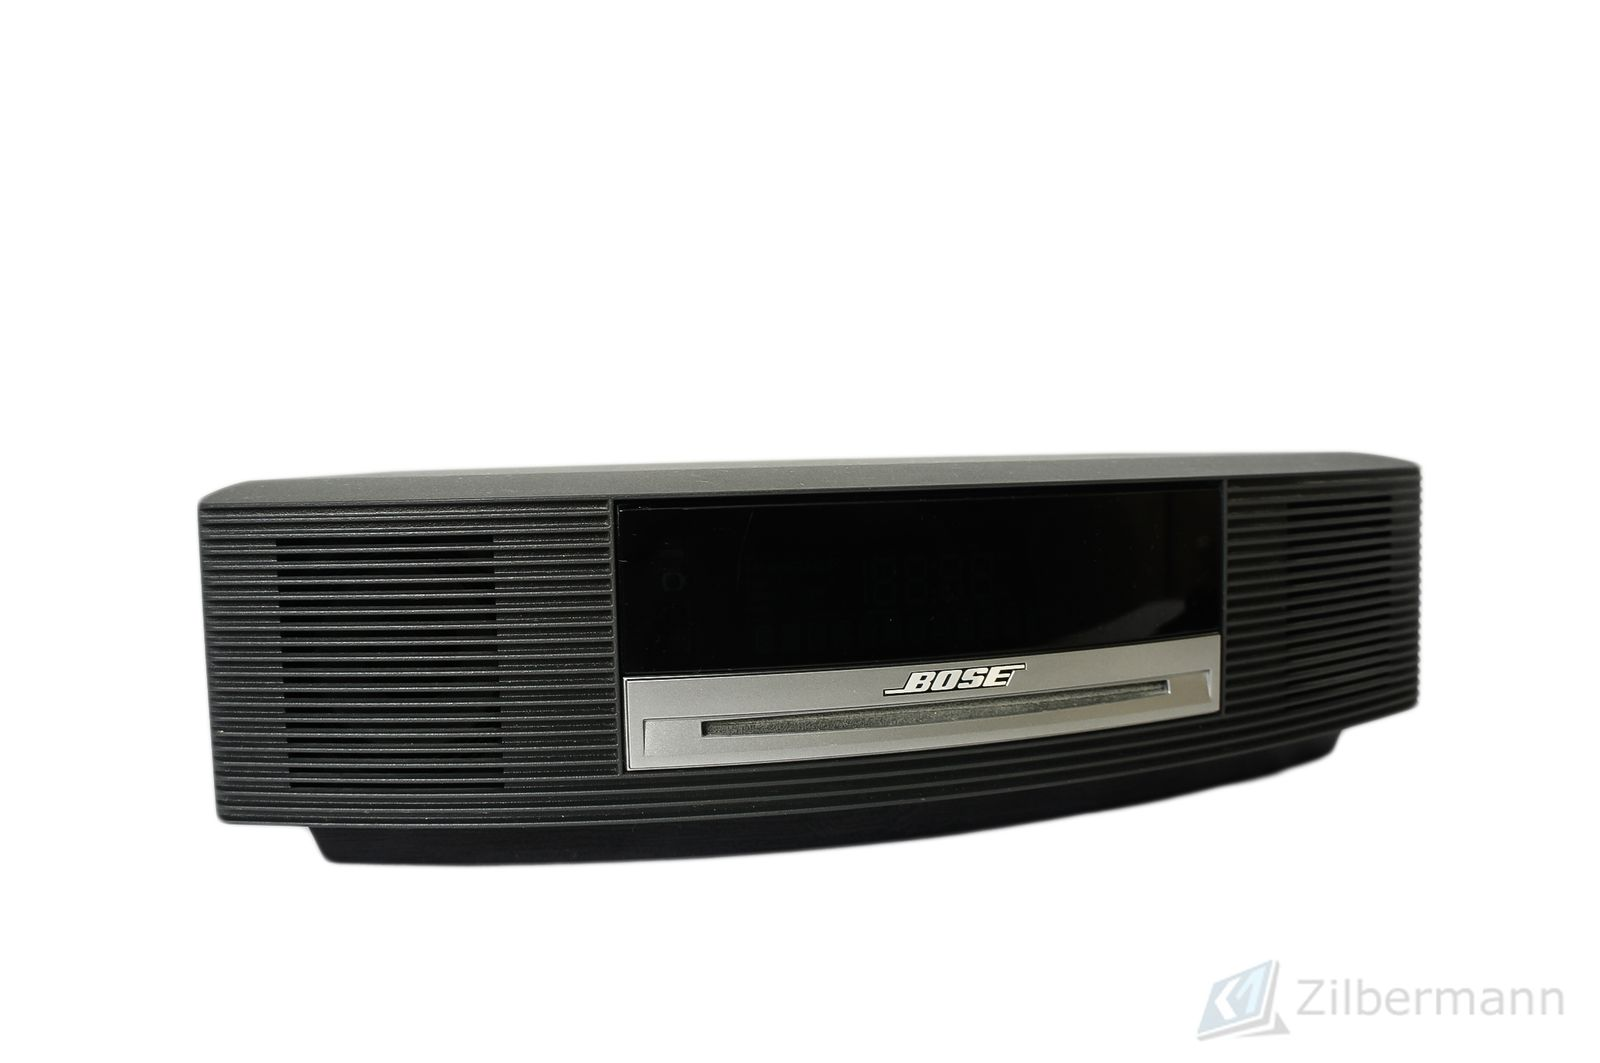 Bose_Wave_Music_System_07